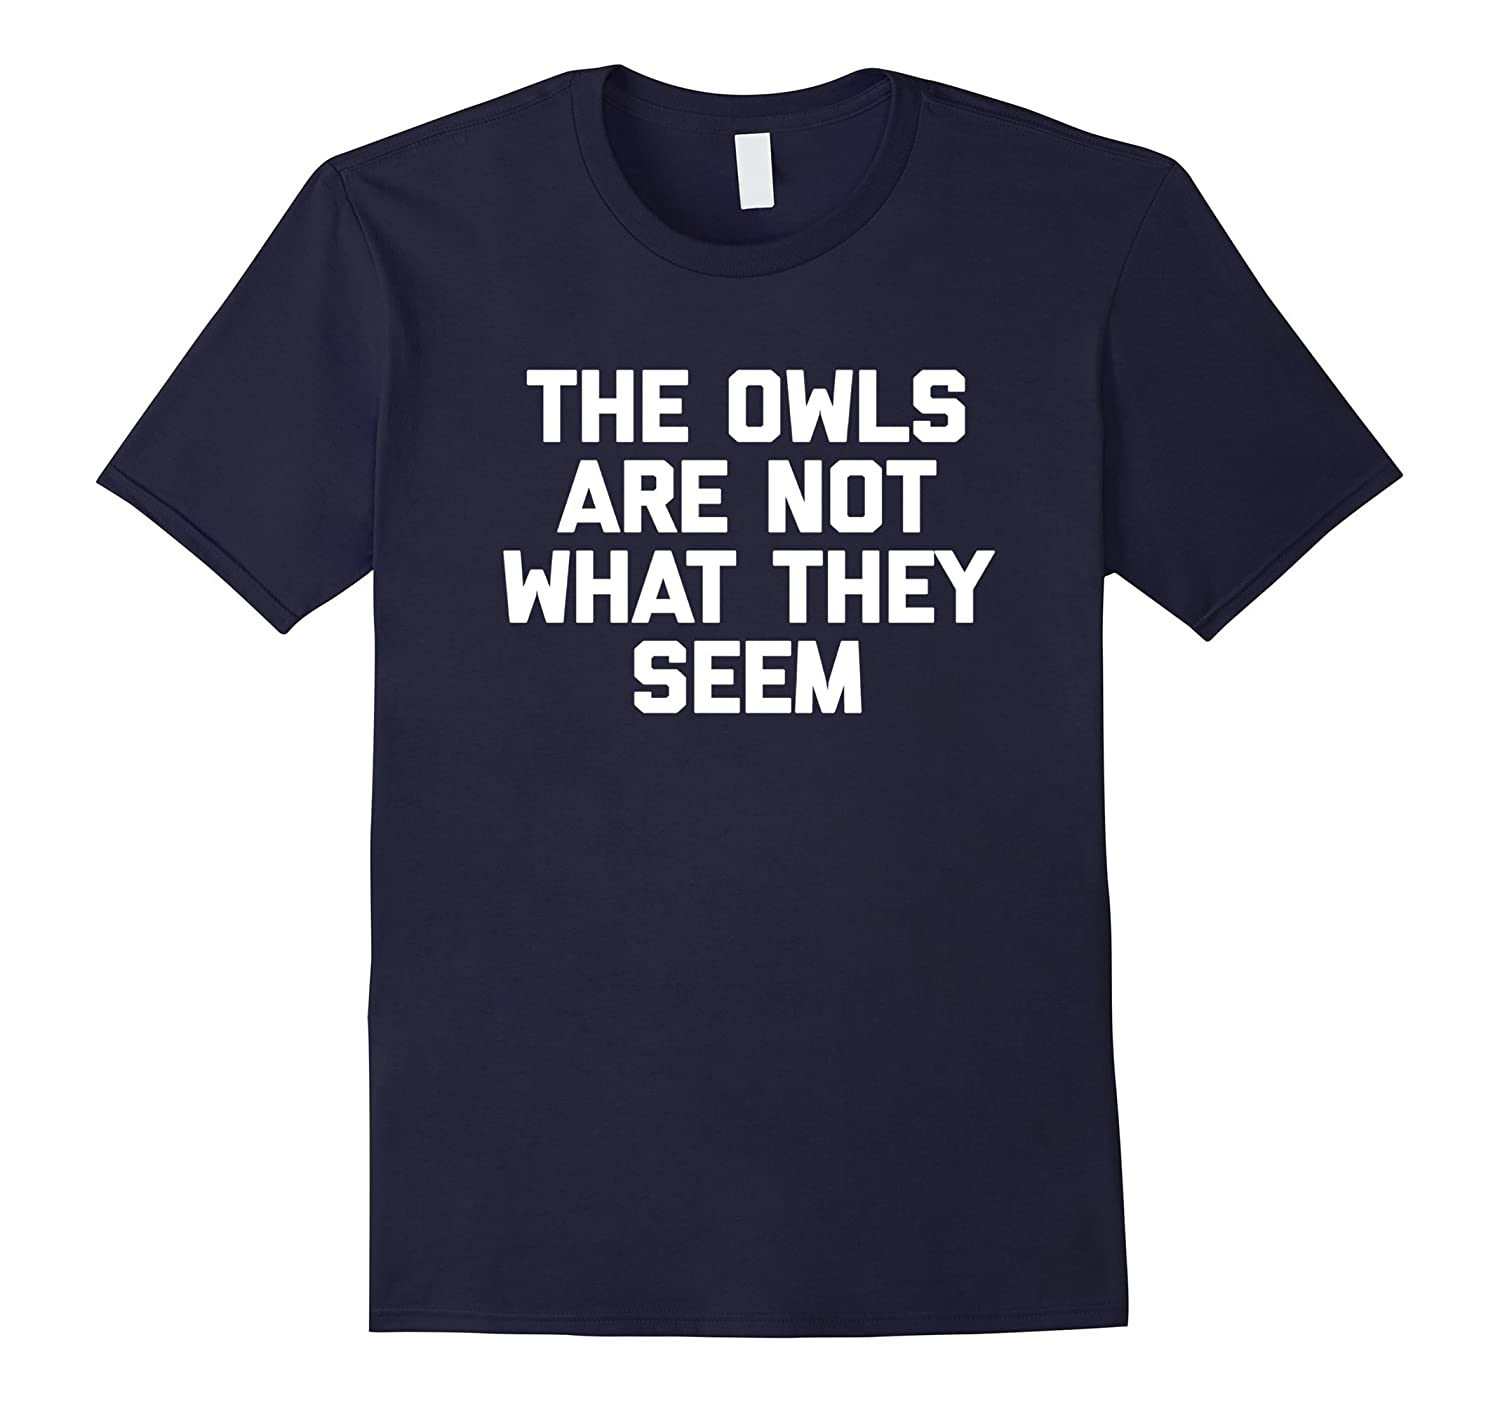 The Owls Are Not What They Seem T-Shirt funny tv humor cool